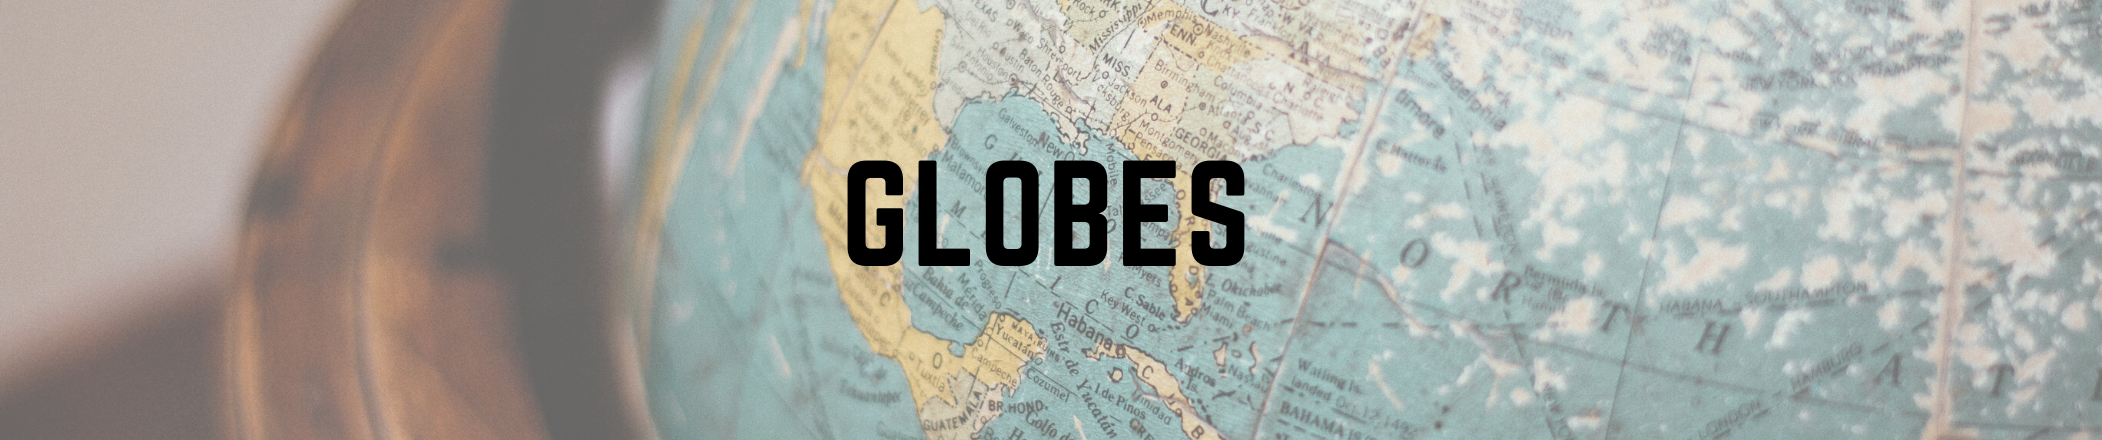 Globes text with image background